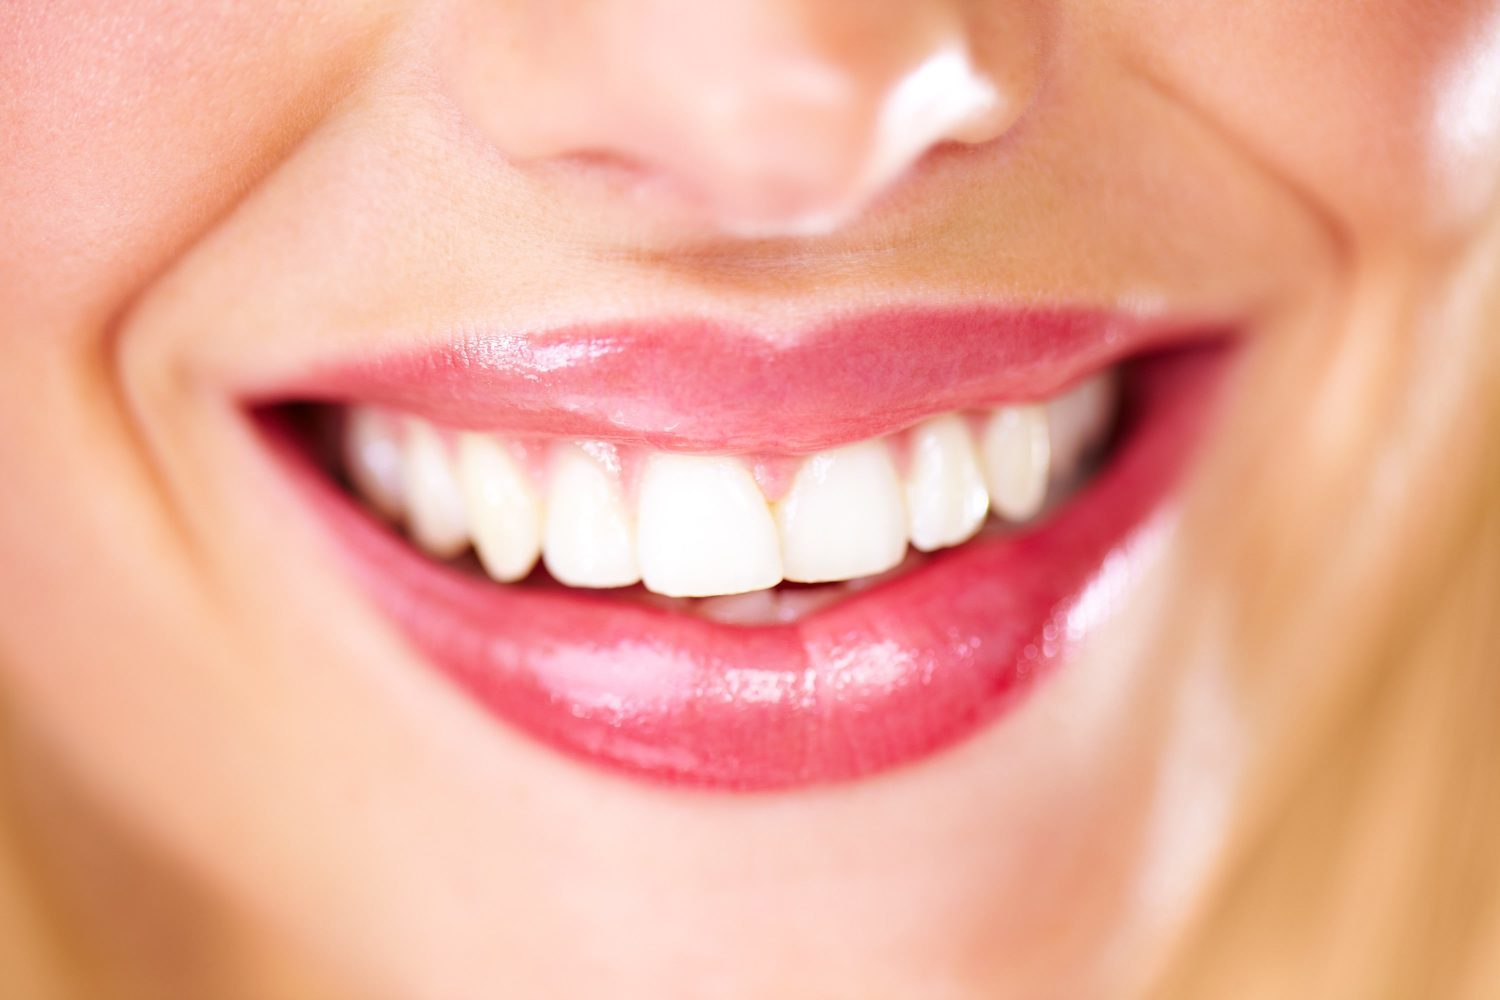 Different Types of Tooth Stains That Teeth Whitening Can Help